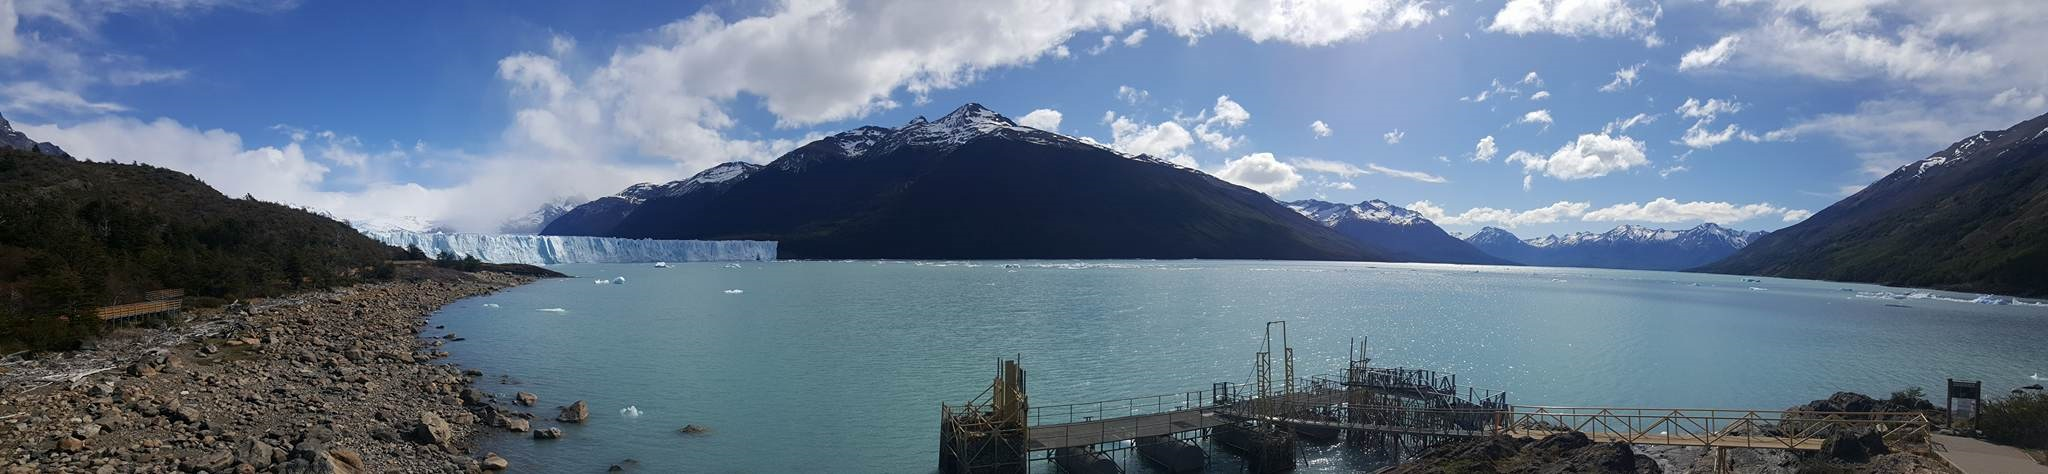 Panoramic view of Perito Moreno glacier